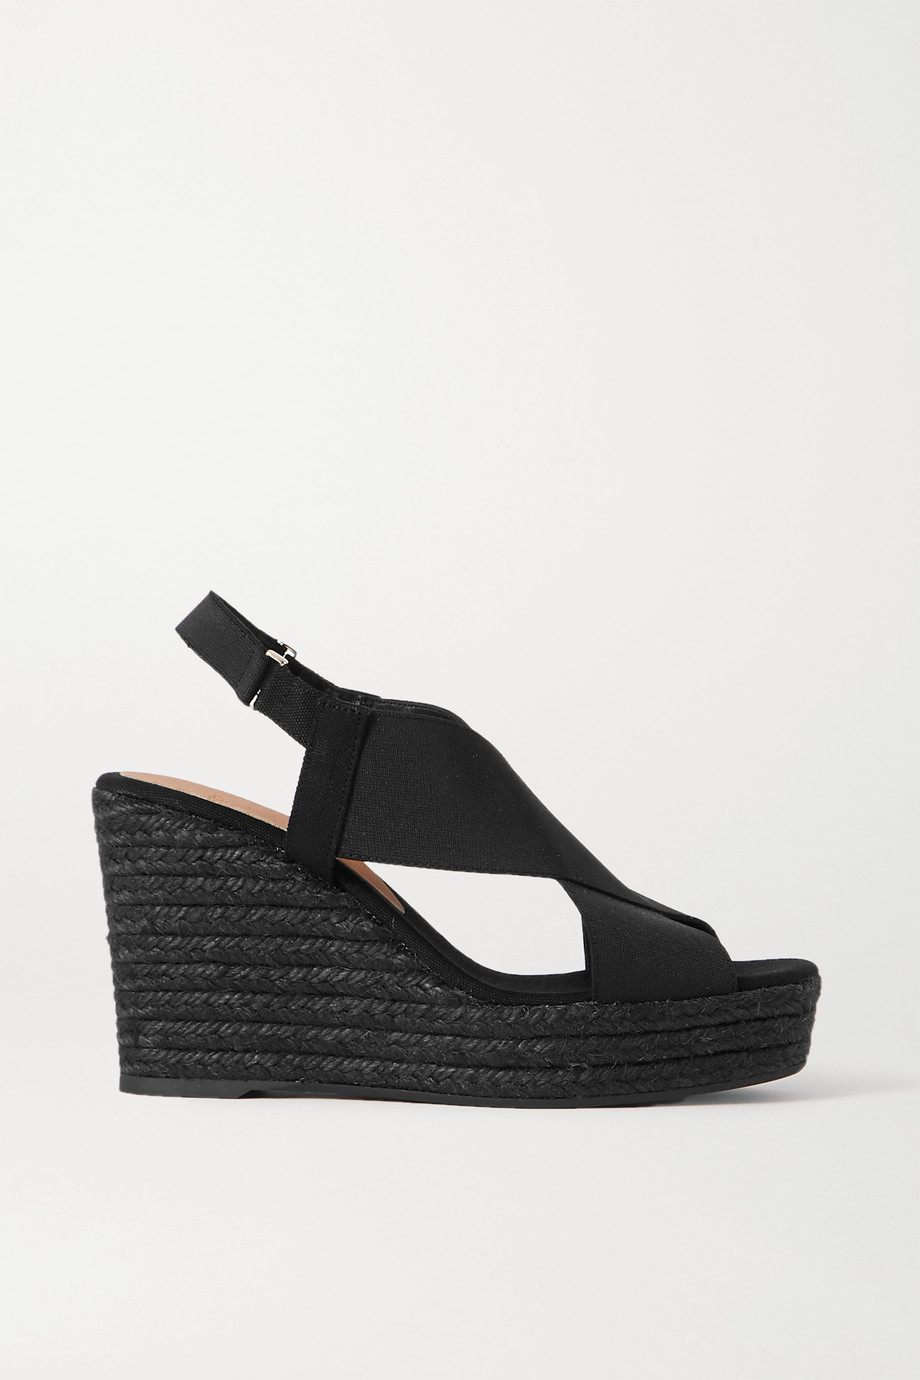 Castañer + NET SUSTAIN Federica canvas wedge espadrilles